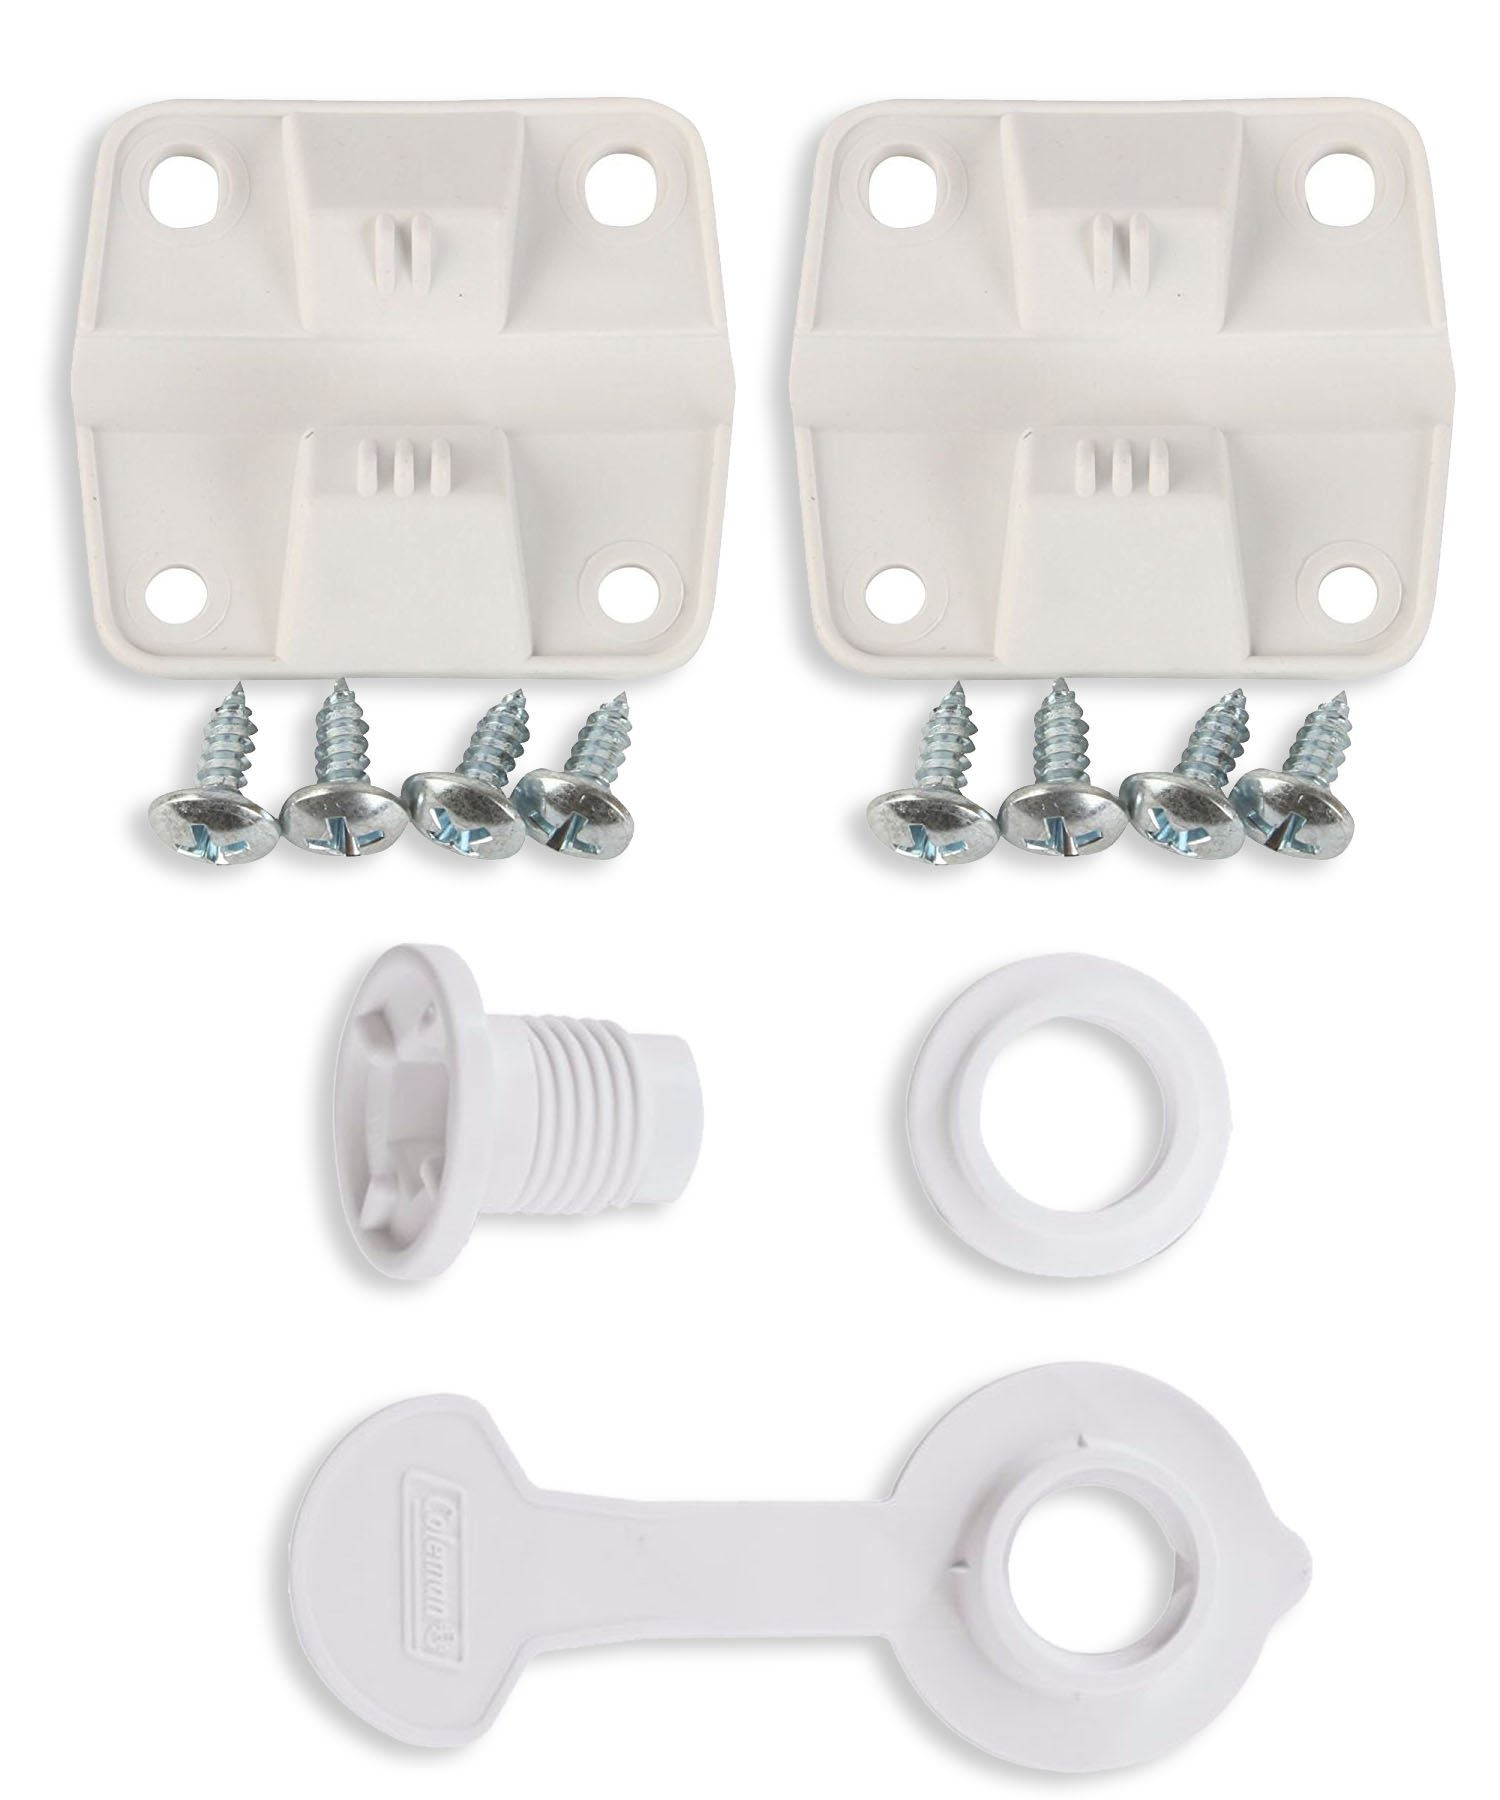 Coleman Ice Chest Cooler Replacement Plastic Hinges and Screws Set & Standard Drain Plug Assembly - 1'' Shaft Length Combo/Bundle (in Package by Main Event USA)